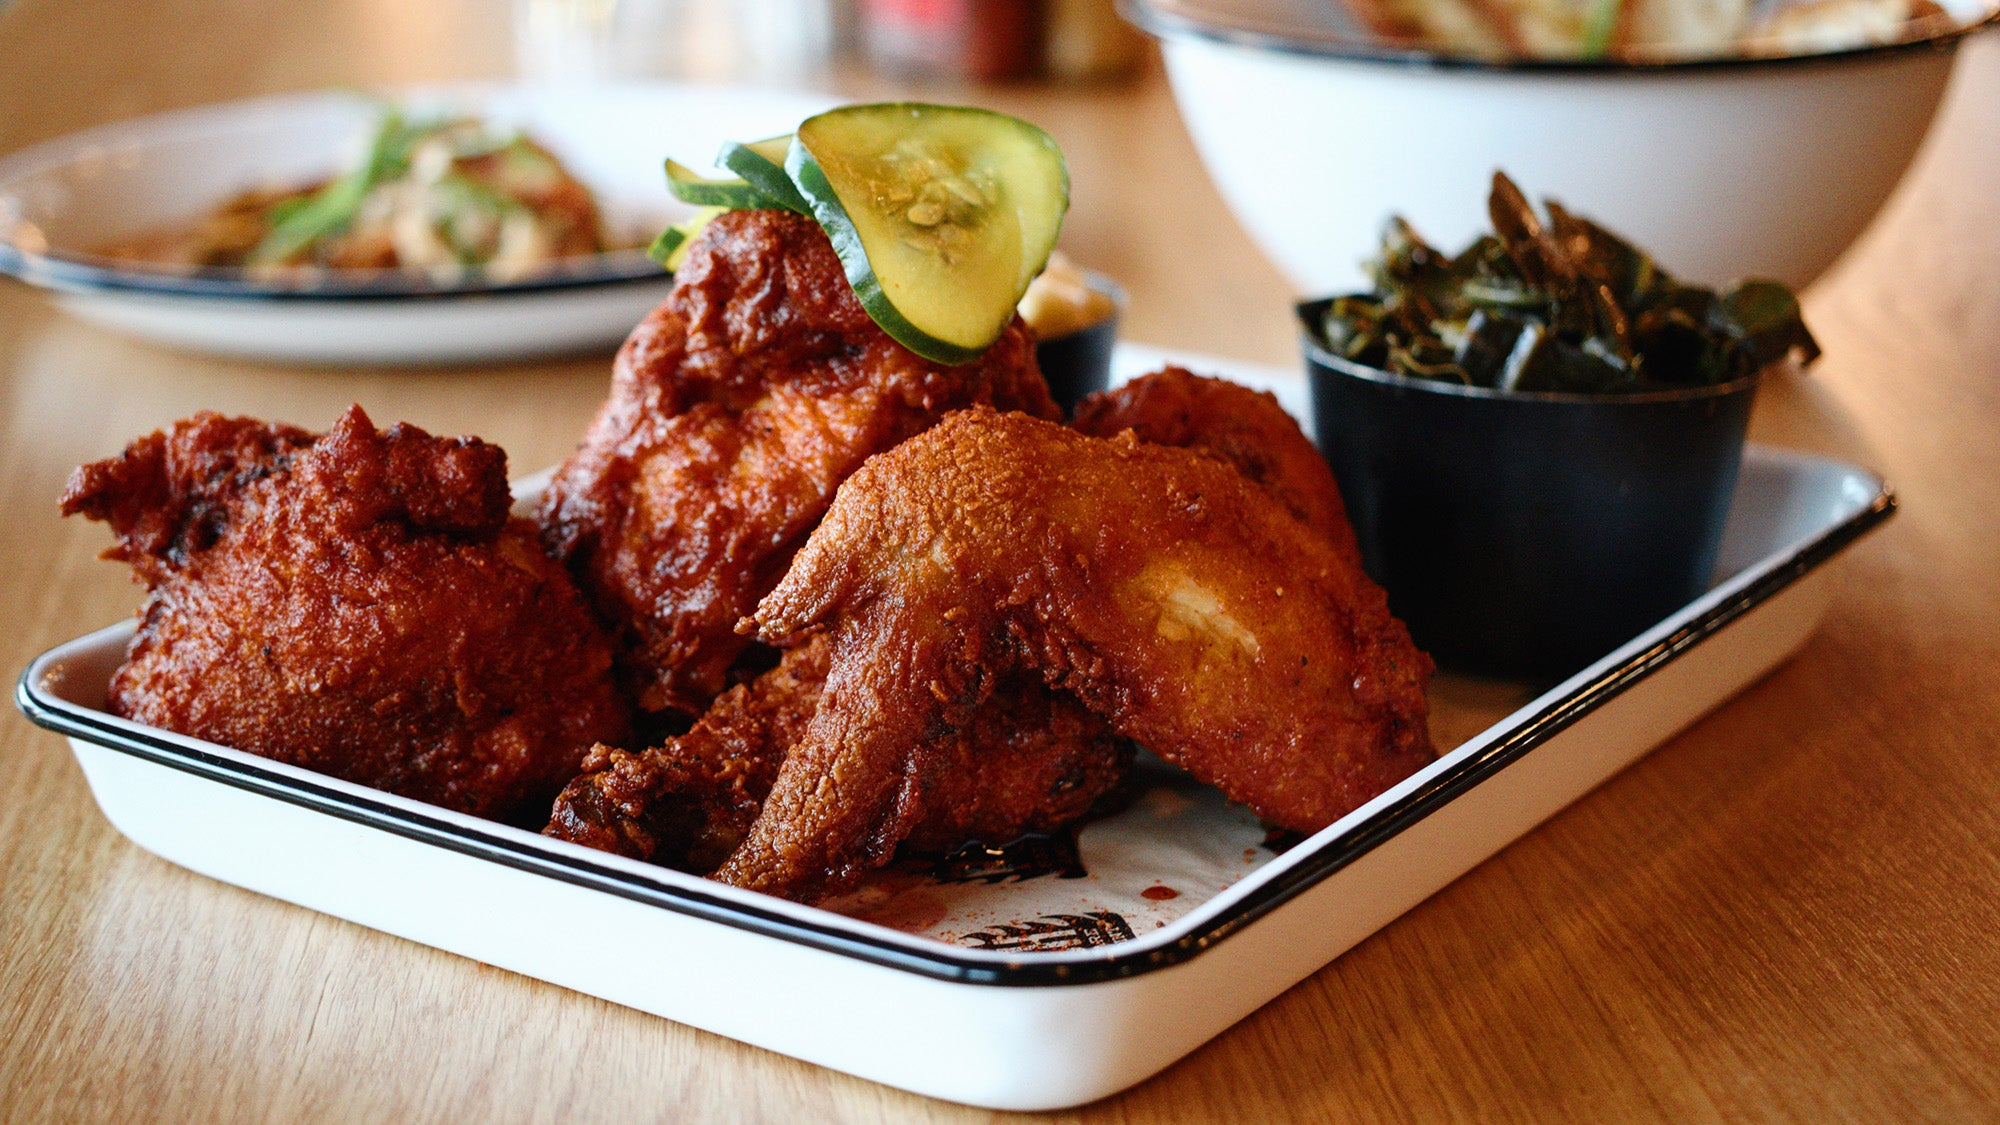 Nashville hot chicken at The Porch Southern Fare and Juke Joint